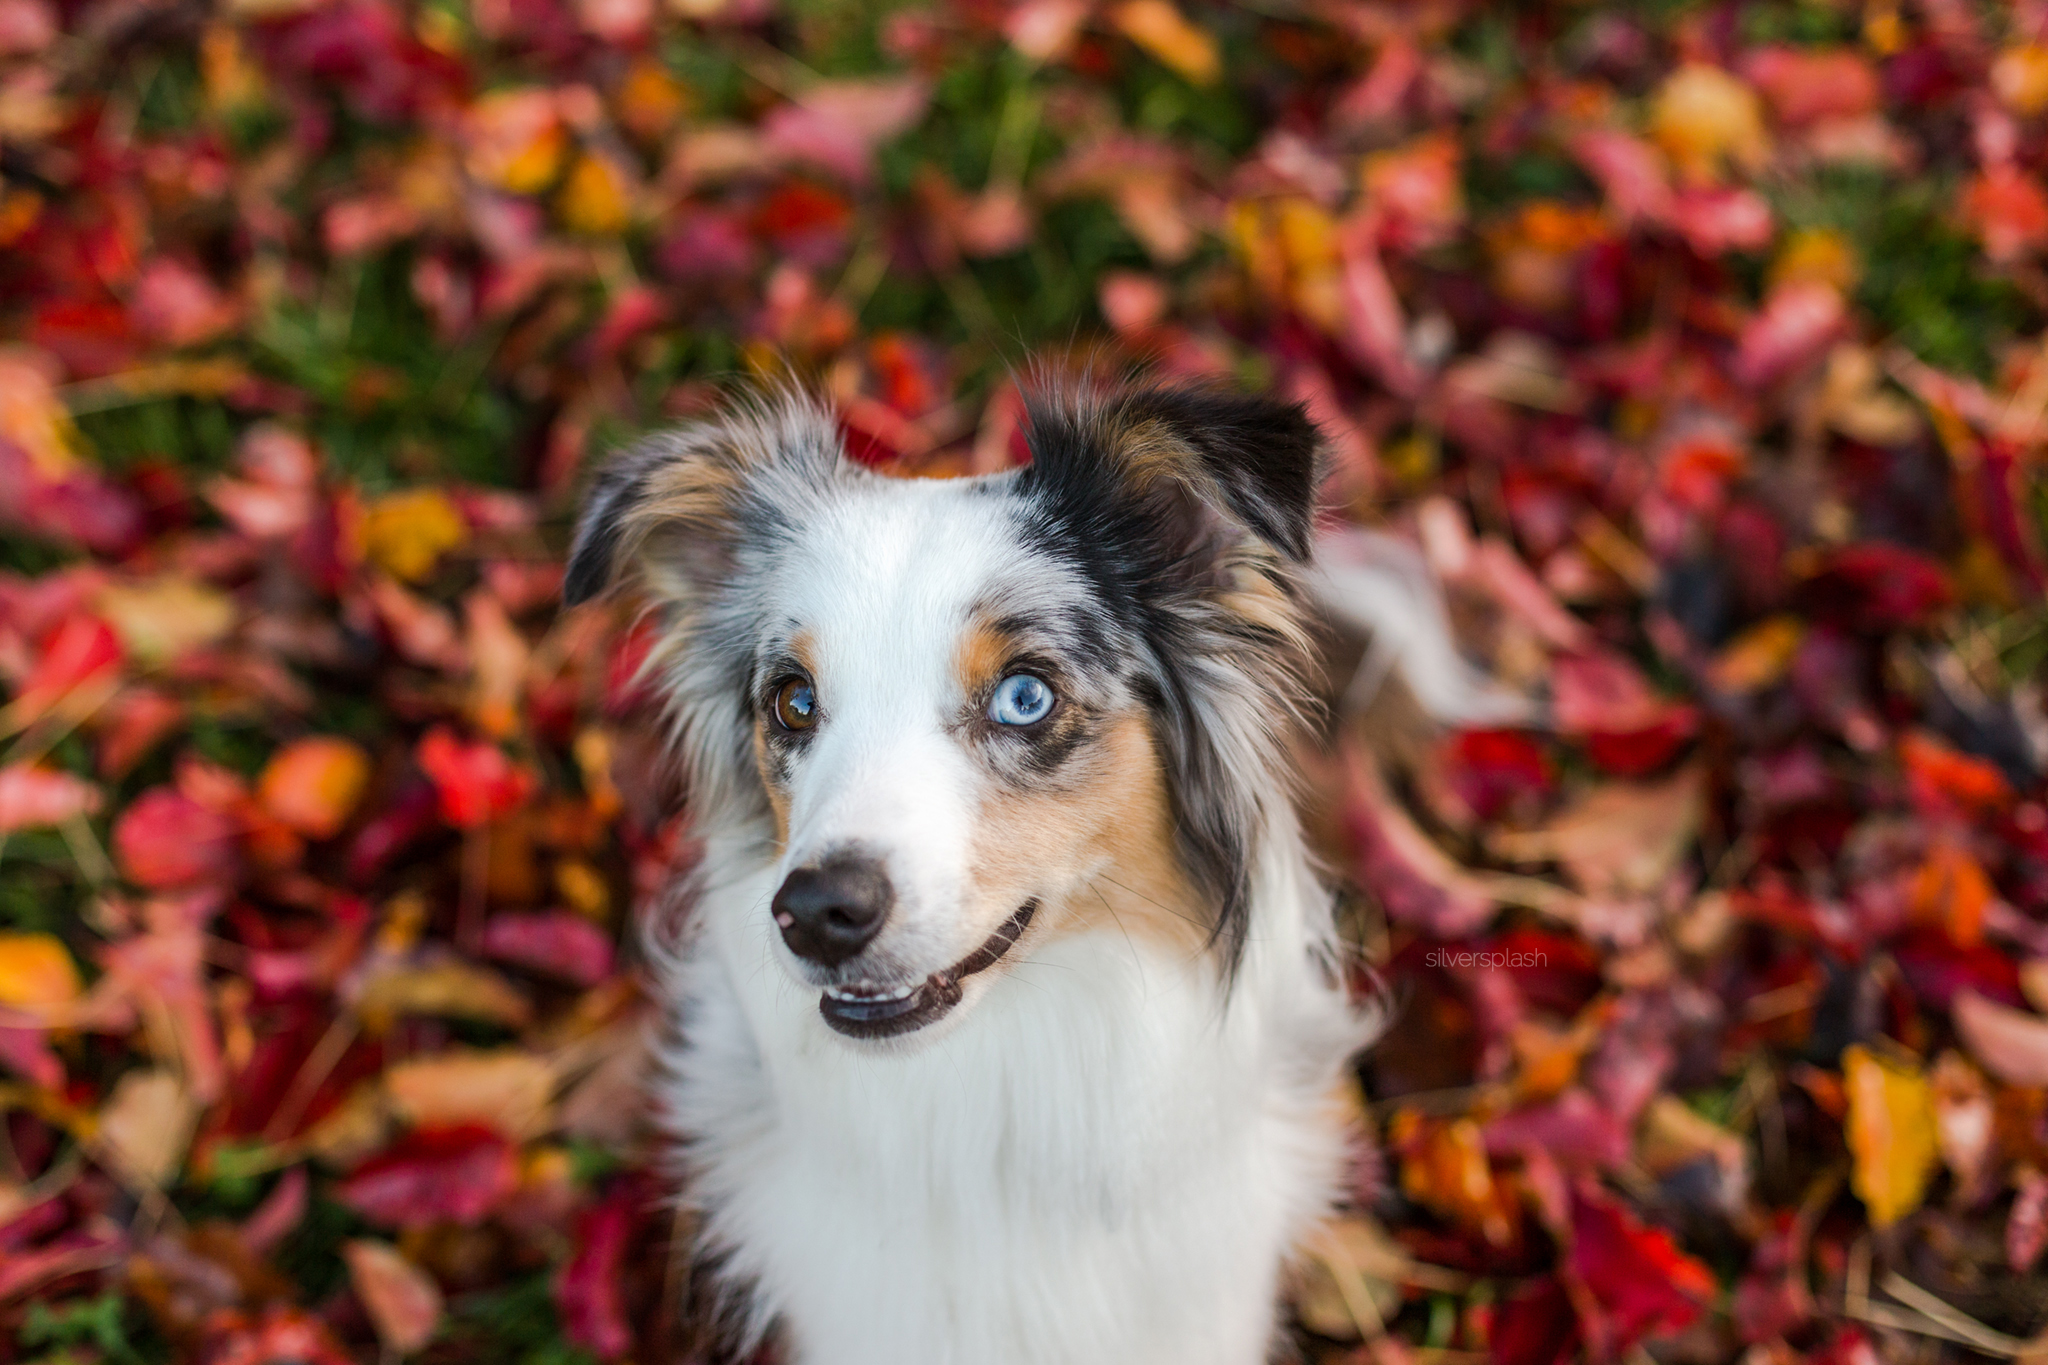 SilverSplashPhoto-fall-photo-shoot-dog-photography-wm.jpg